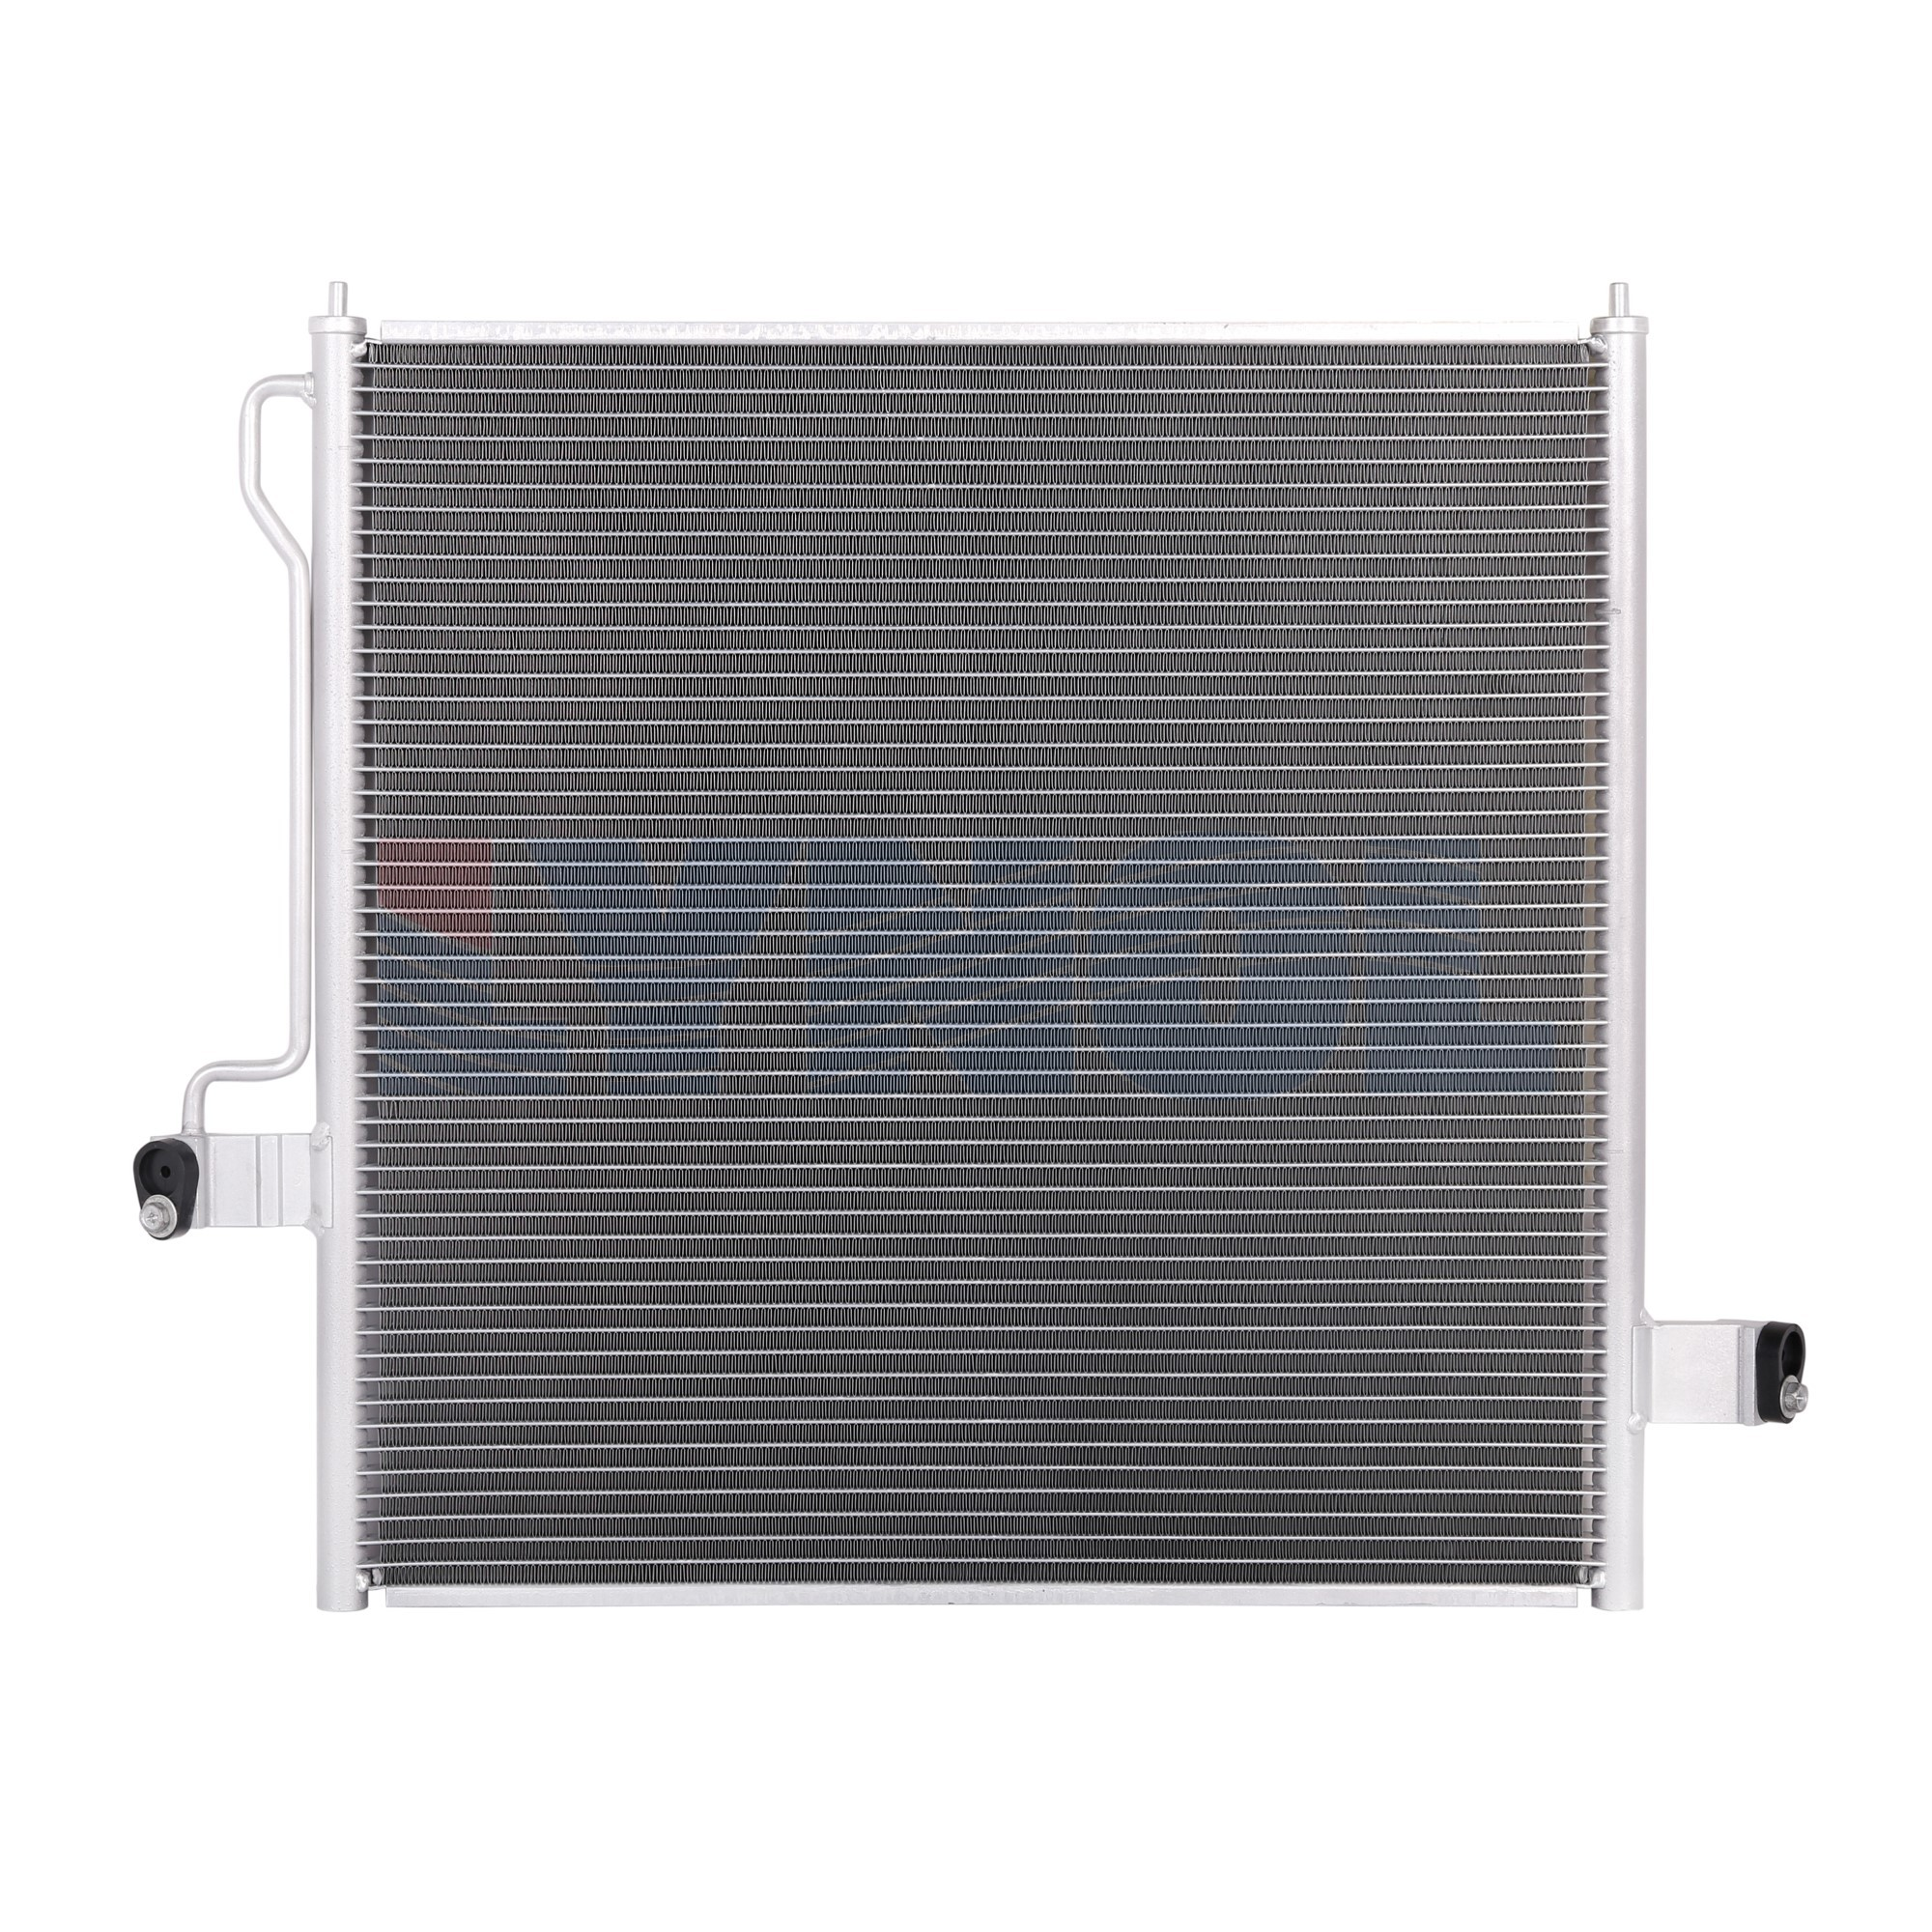 AC3588 - AC Condensers  - 03-10 Ford Explorer / Explorer Sport Trac, Lincoln Aviator, Mercury Mountaineer